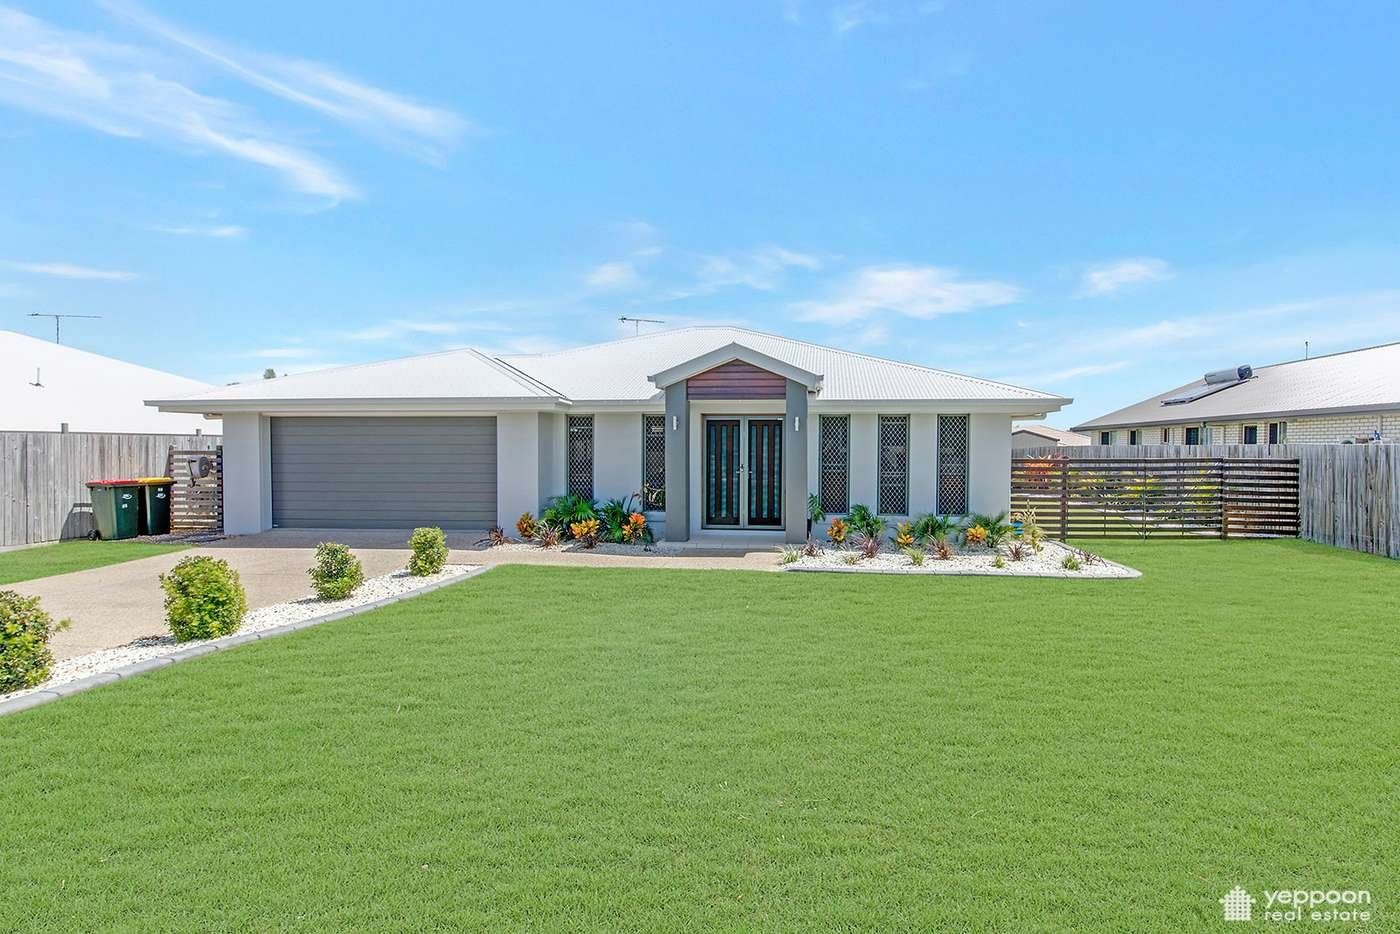 Main view of Homely house listing, 13 Lapwing Court, Yeppoon QLD 4703